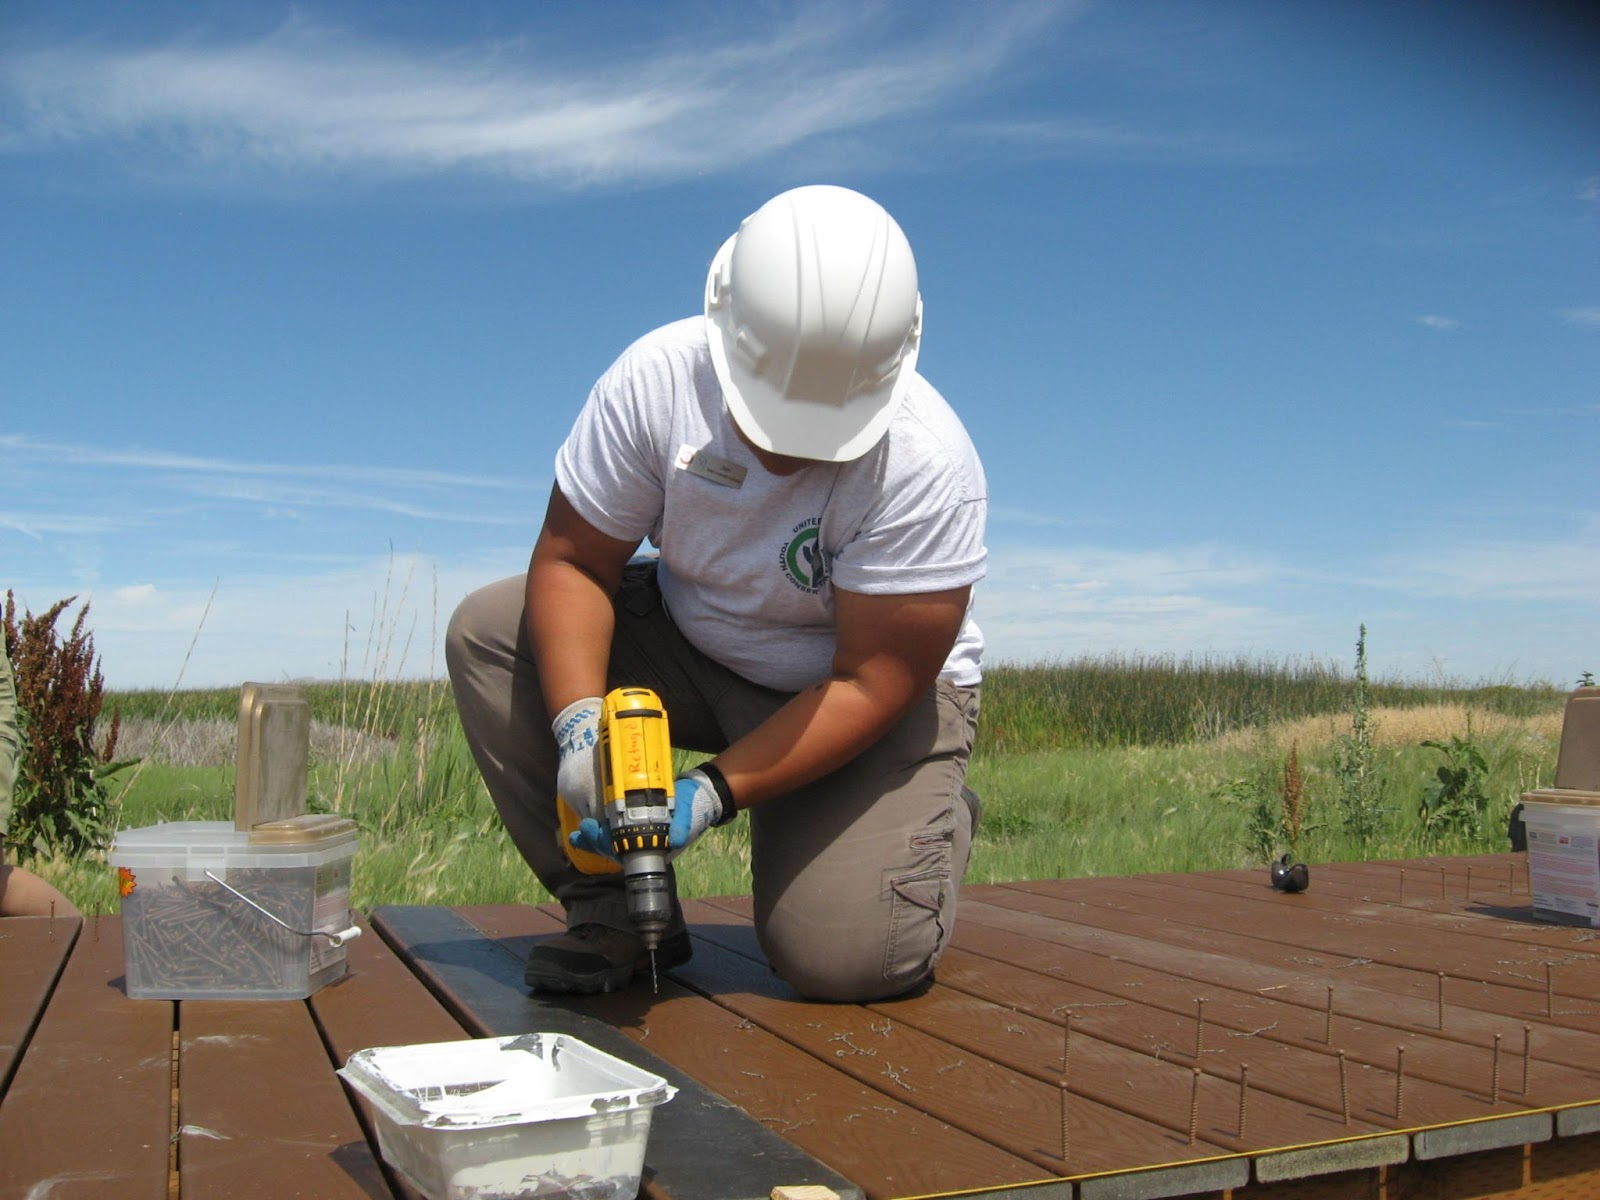 A youth corps worker constructs a bridge.